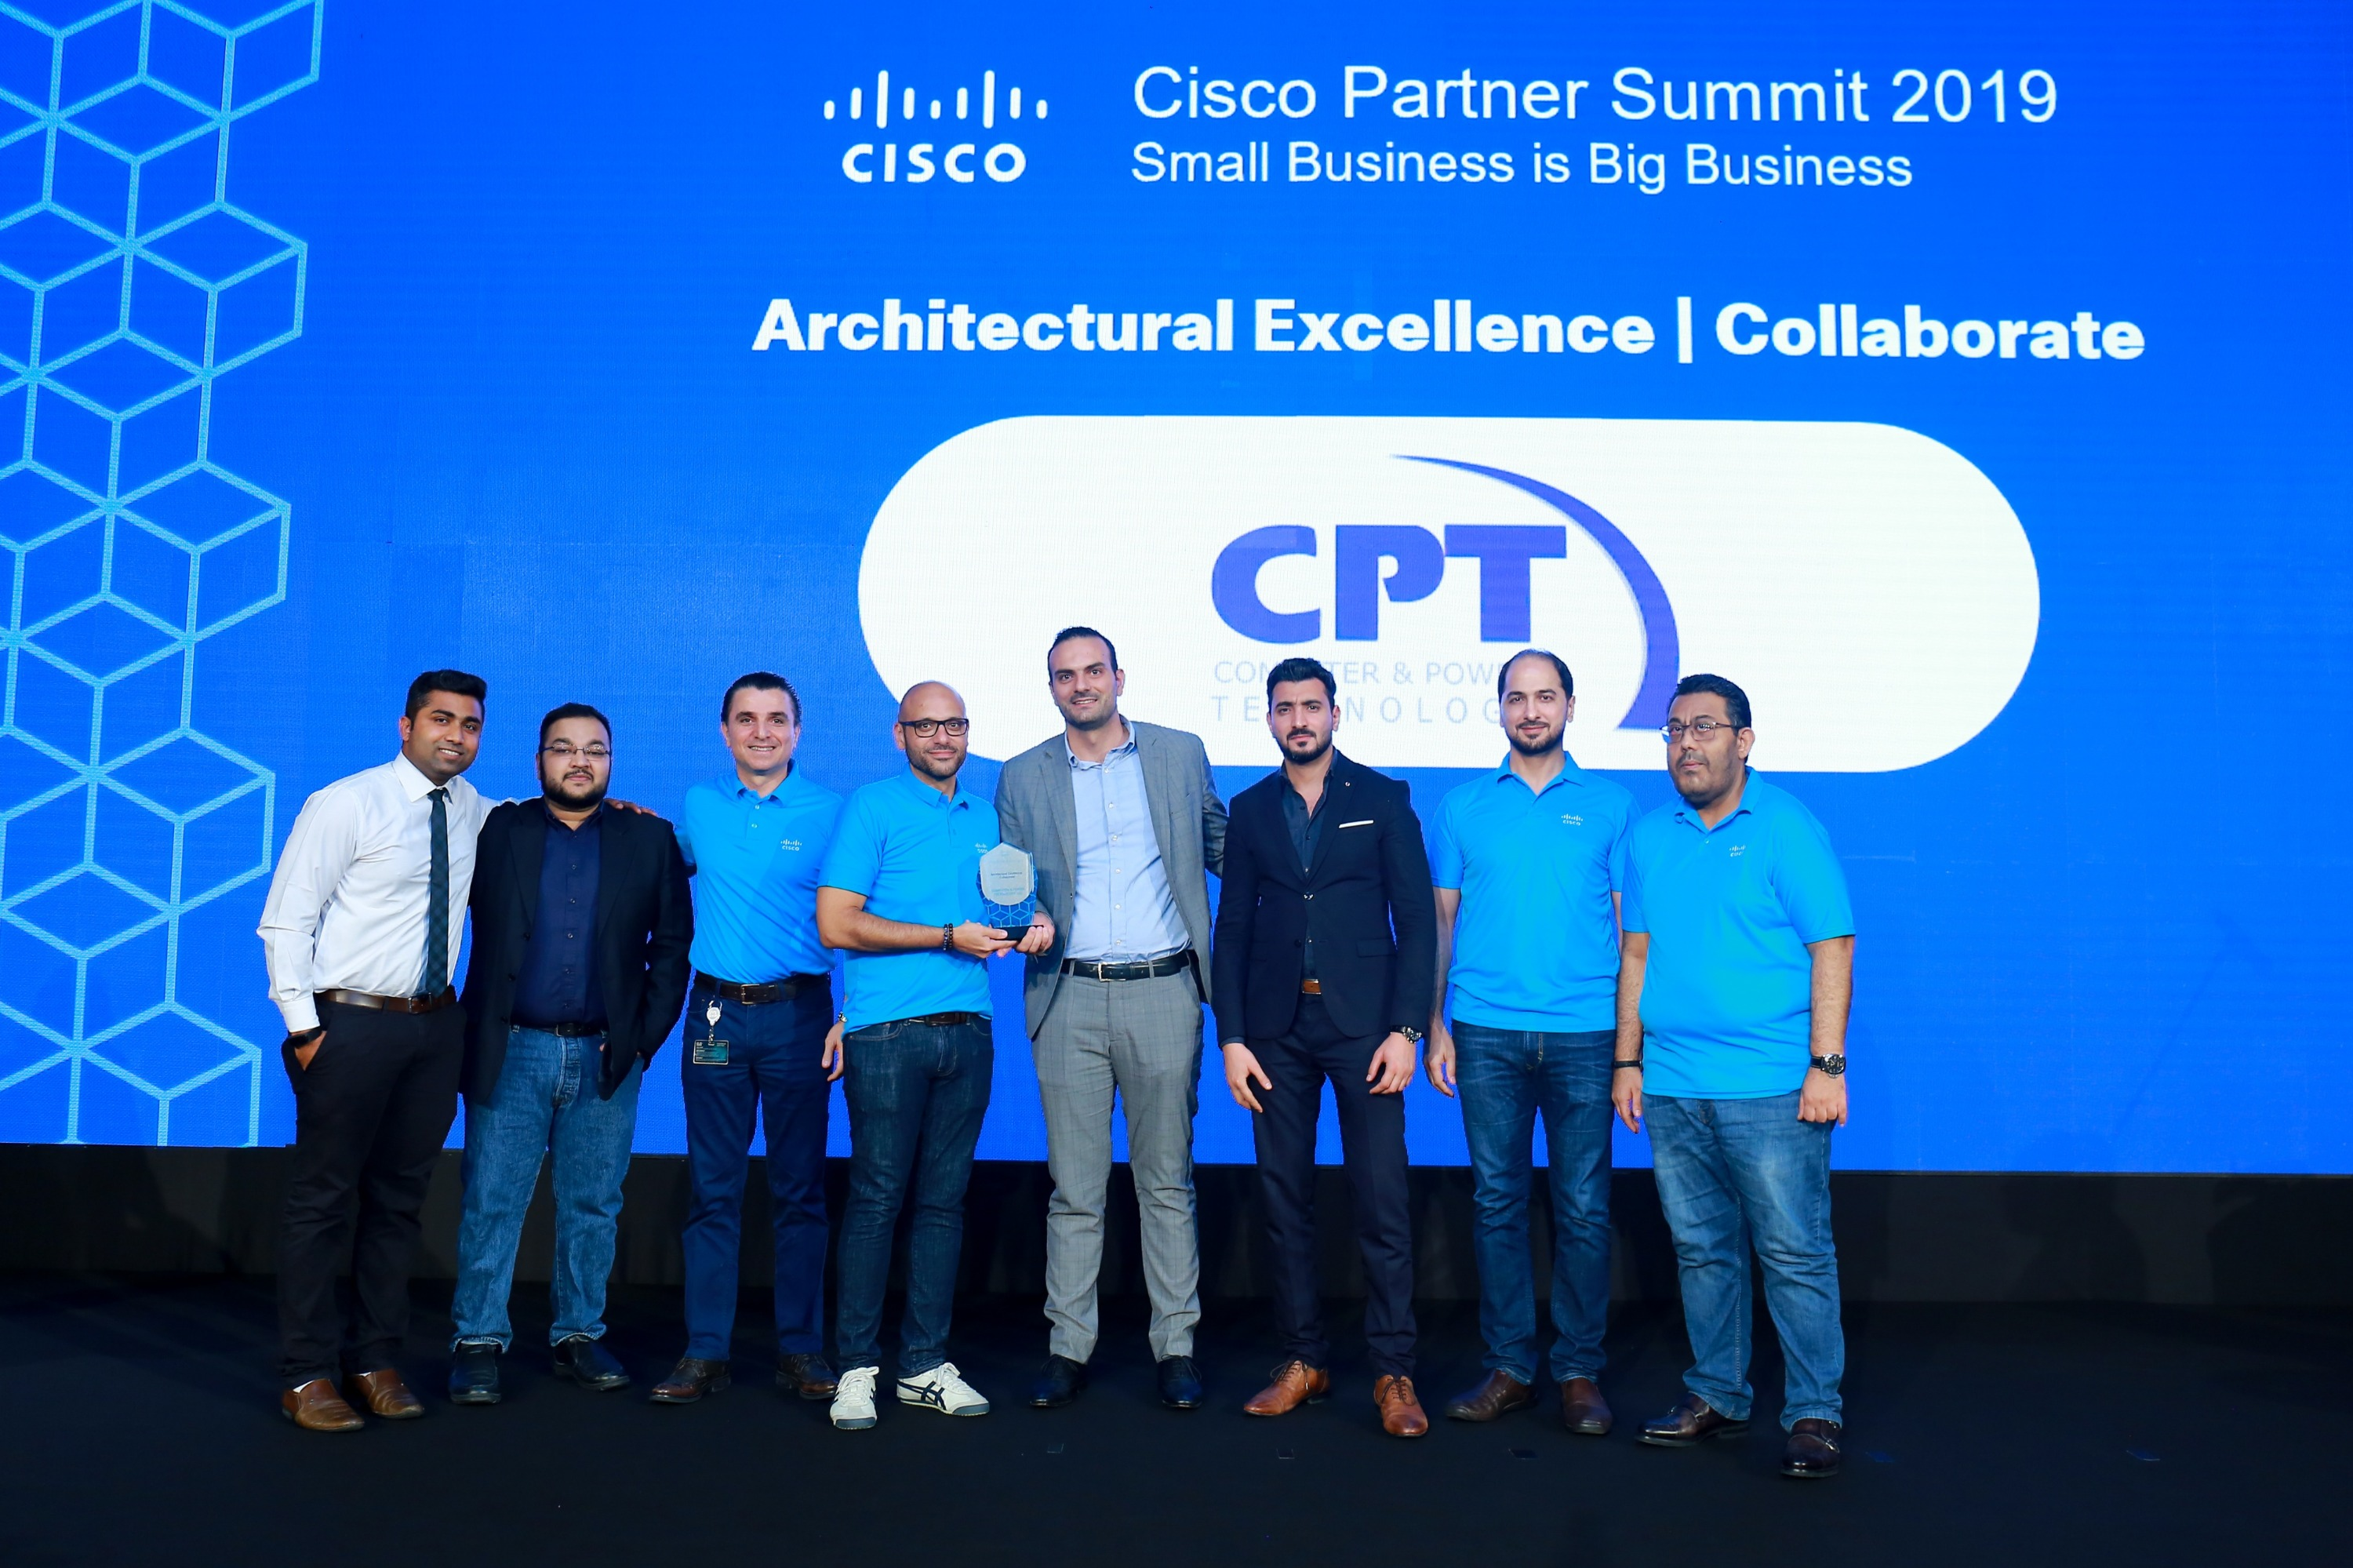 Computer & Power Technology awarded 'Cisco Architectural Award – Collaborate' at Cisco Partner Summit 2019